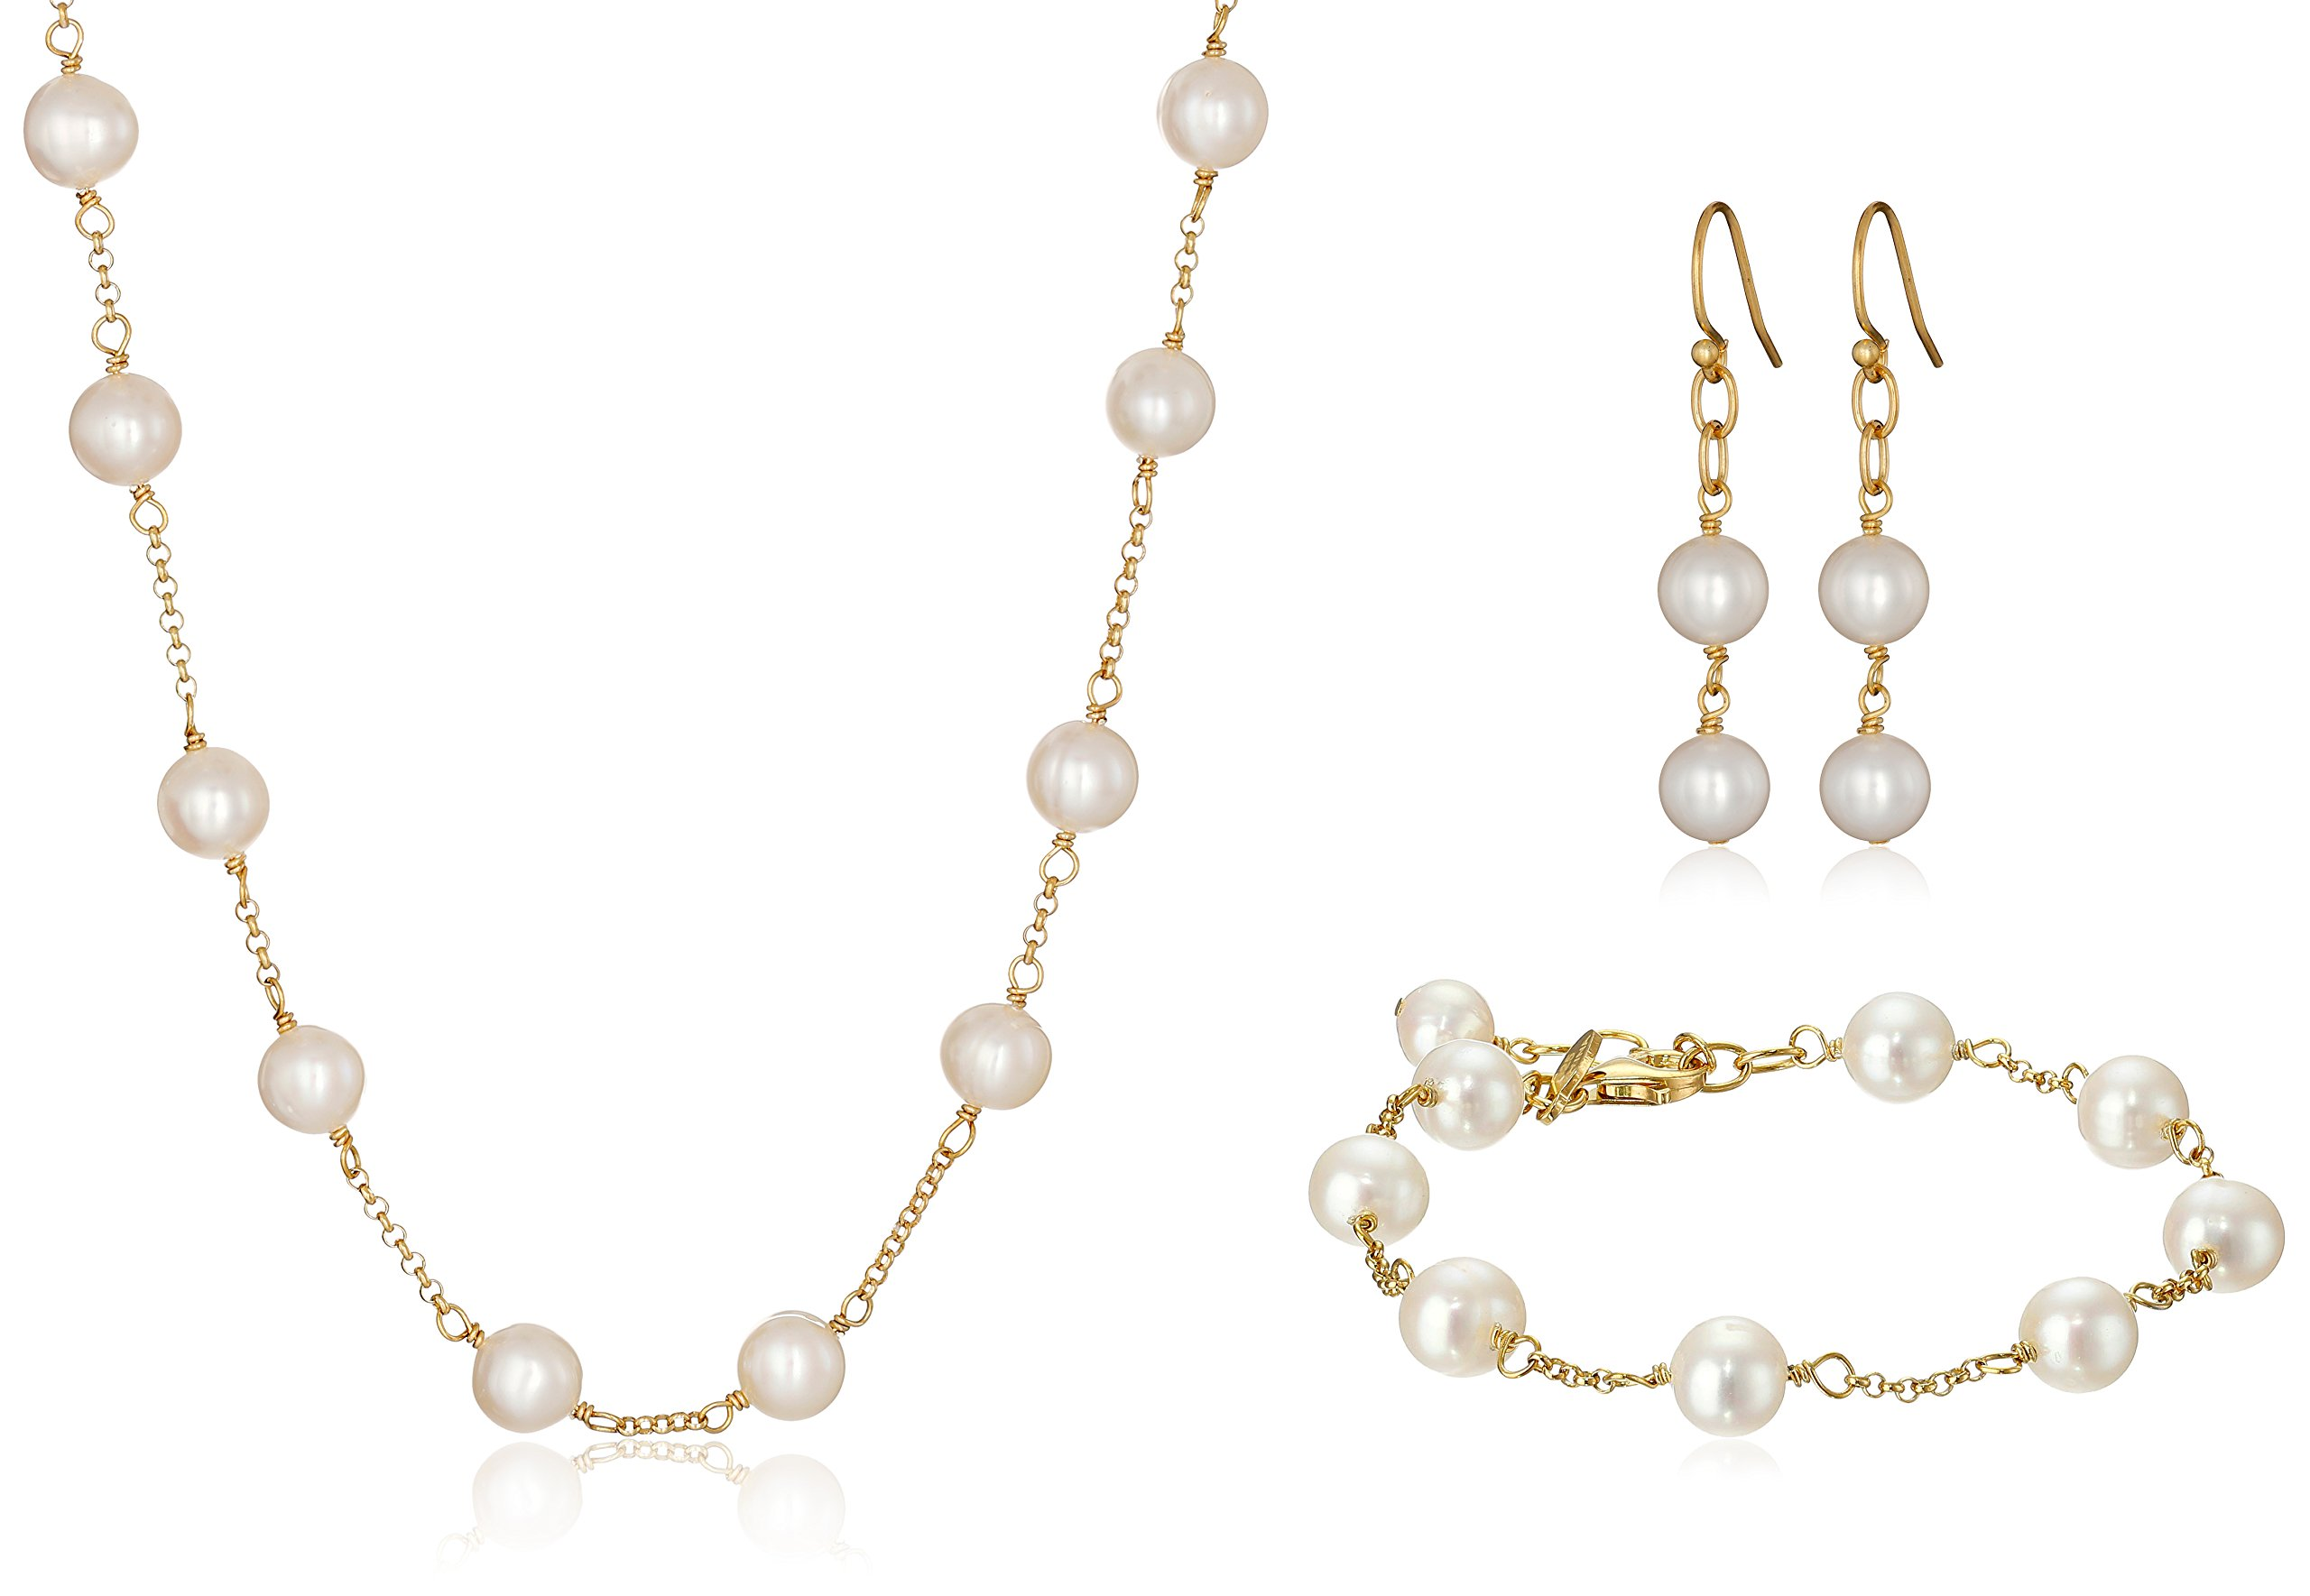 Freshwater Cultured Pearl Jewelry Set